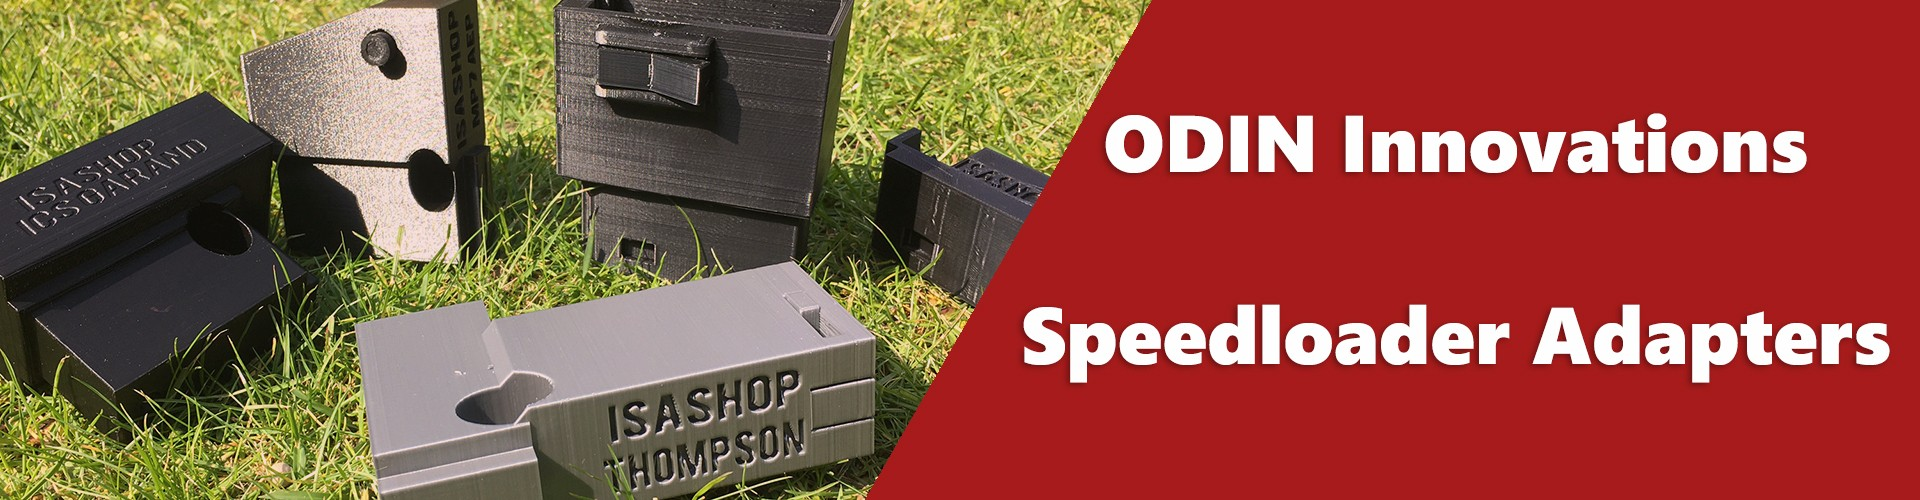 ODIN Innovations Speedloader Adapters